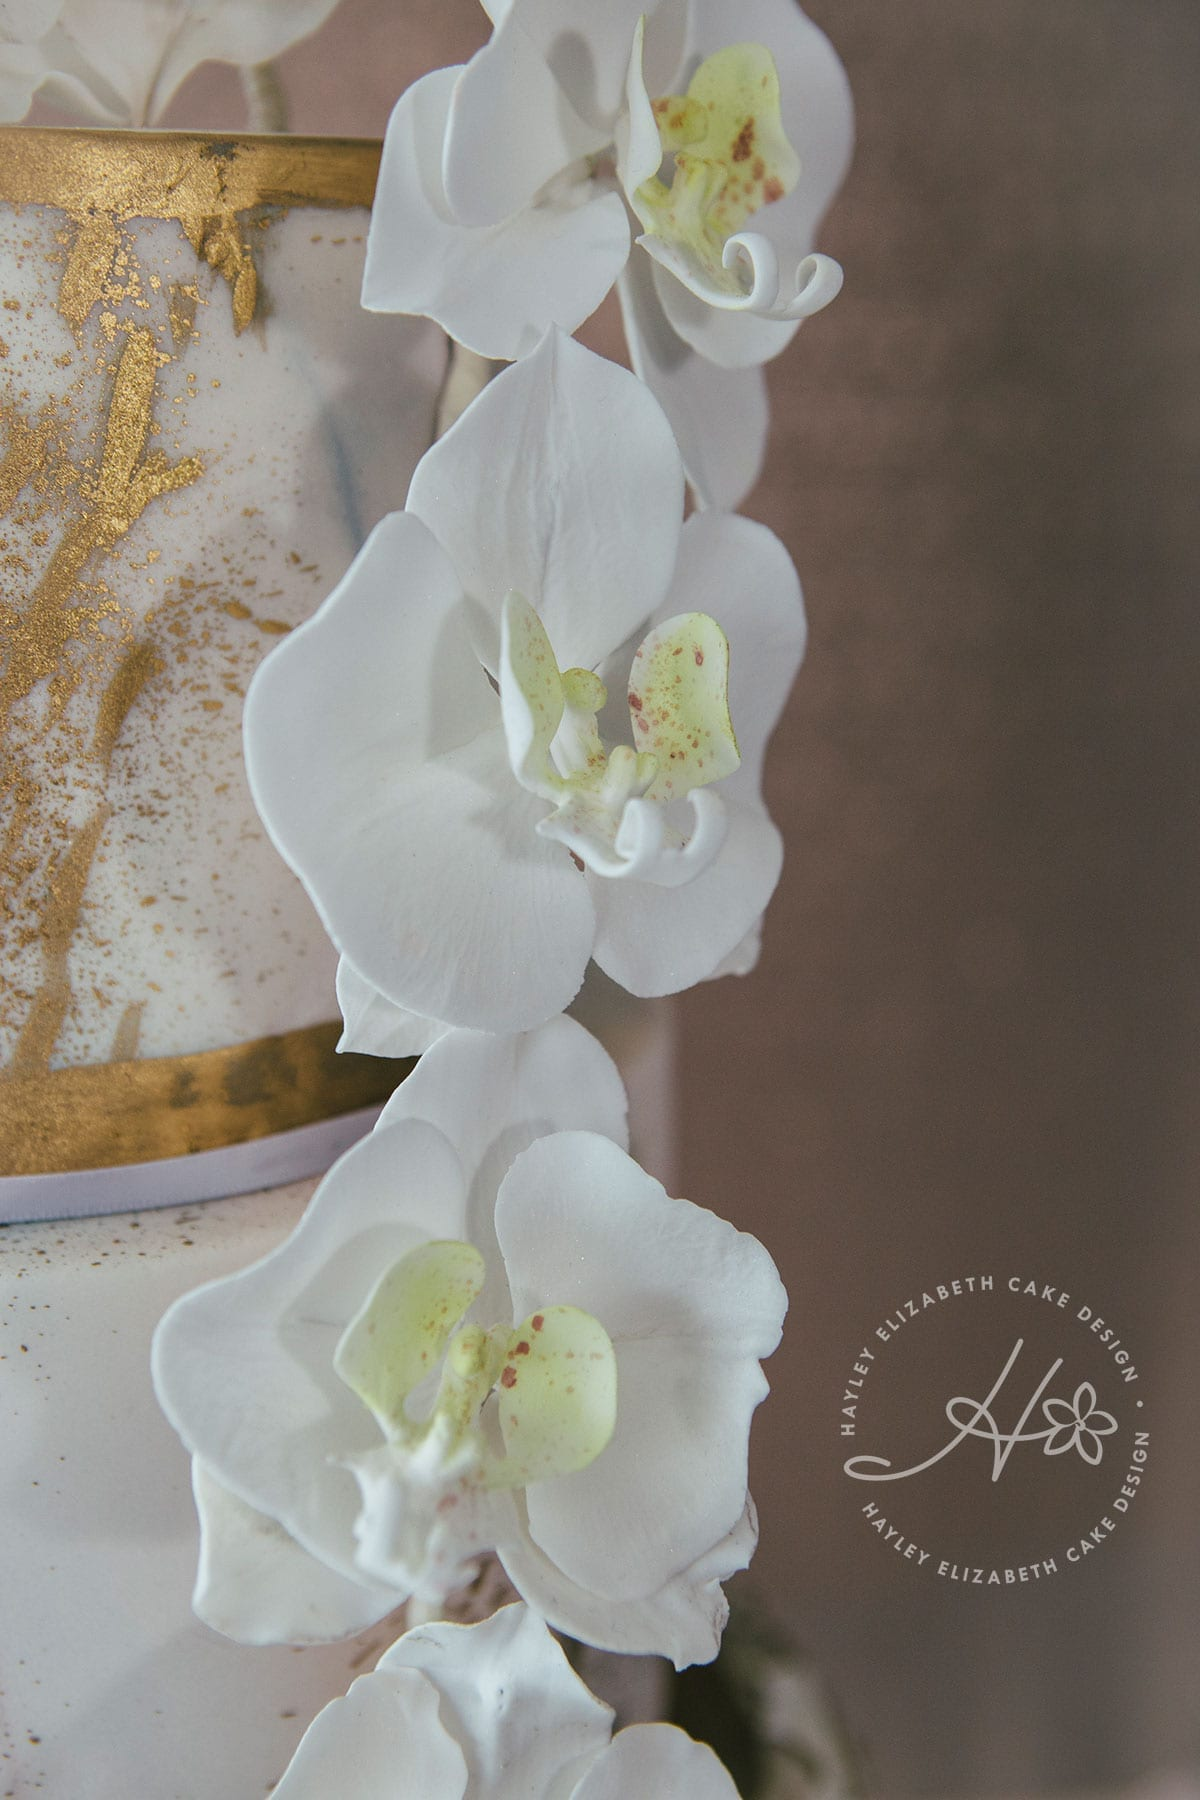 Luxury wedding cake with gold foil, marble effect icing, sugar flower orchids and ruffles. Elegant wedding cake, luxury cake design, wedding cake inspiration, beautiful wedding cakes, three tier wedding cake, white and gold wedding cake.